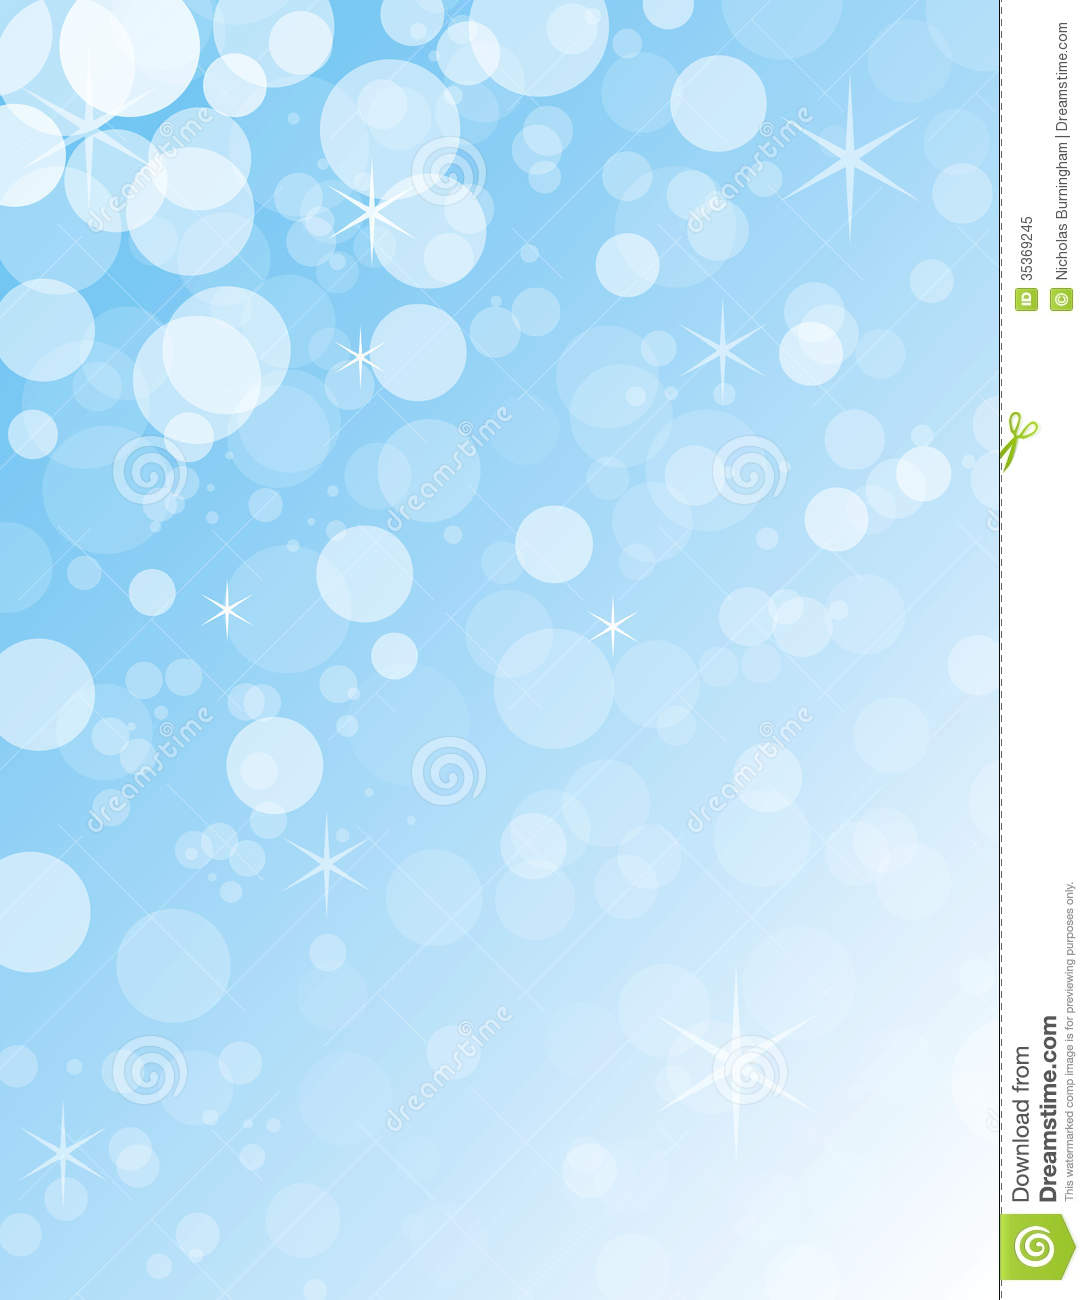 Transparent Blue And White Christmas Bokeh Balls Royalty Free ...